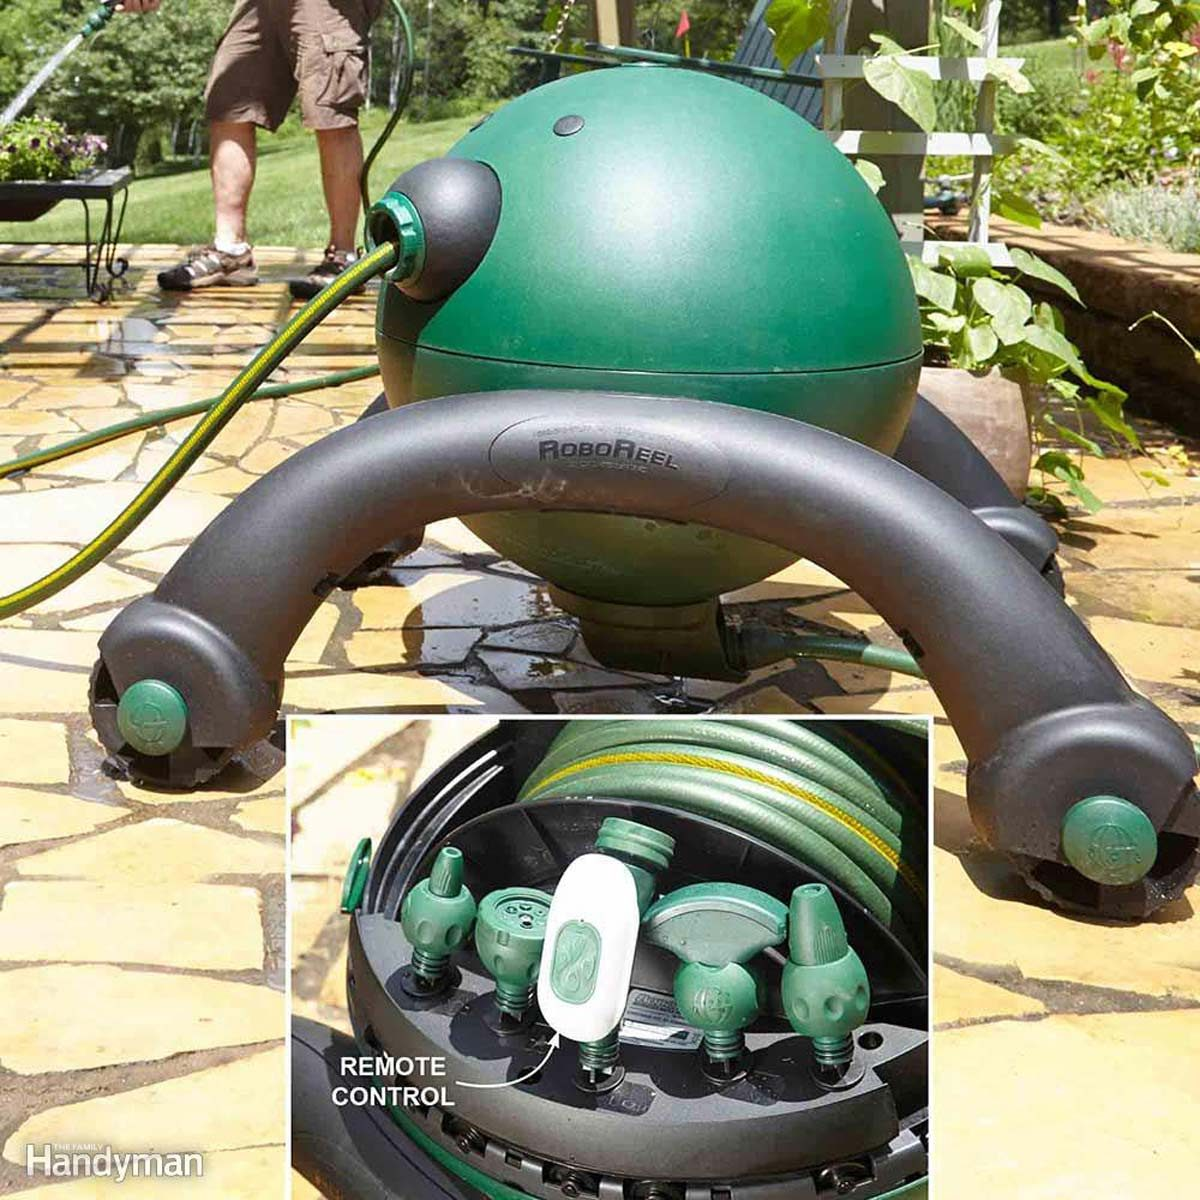 World's Coolest Hose Reel: RoboReel Water Hose Reel